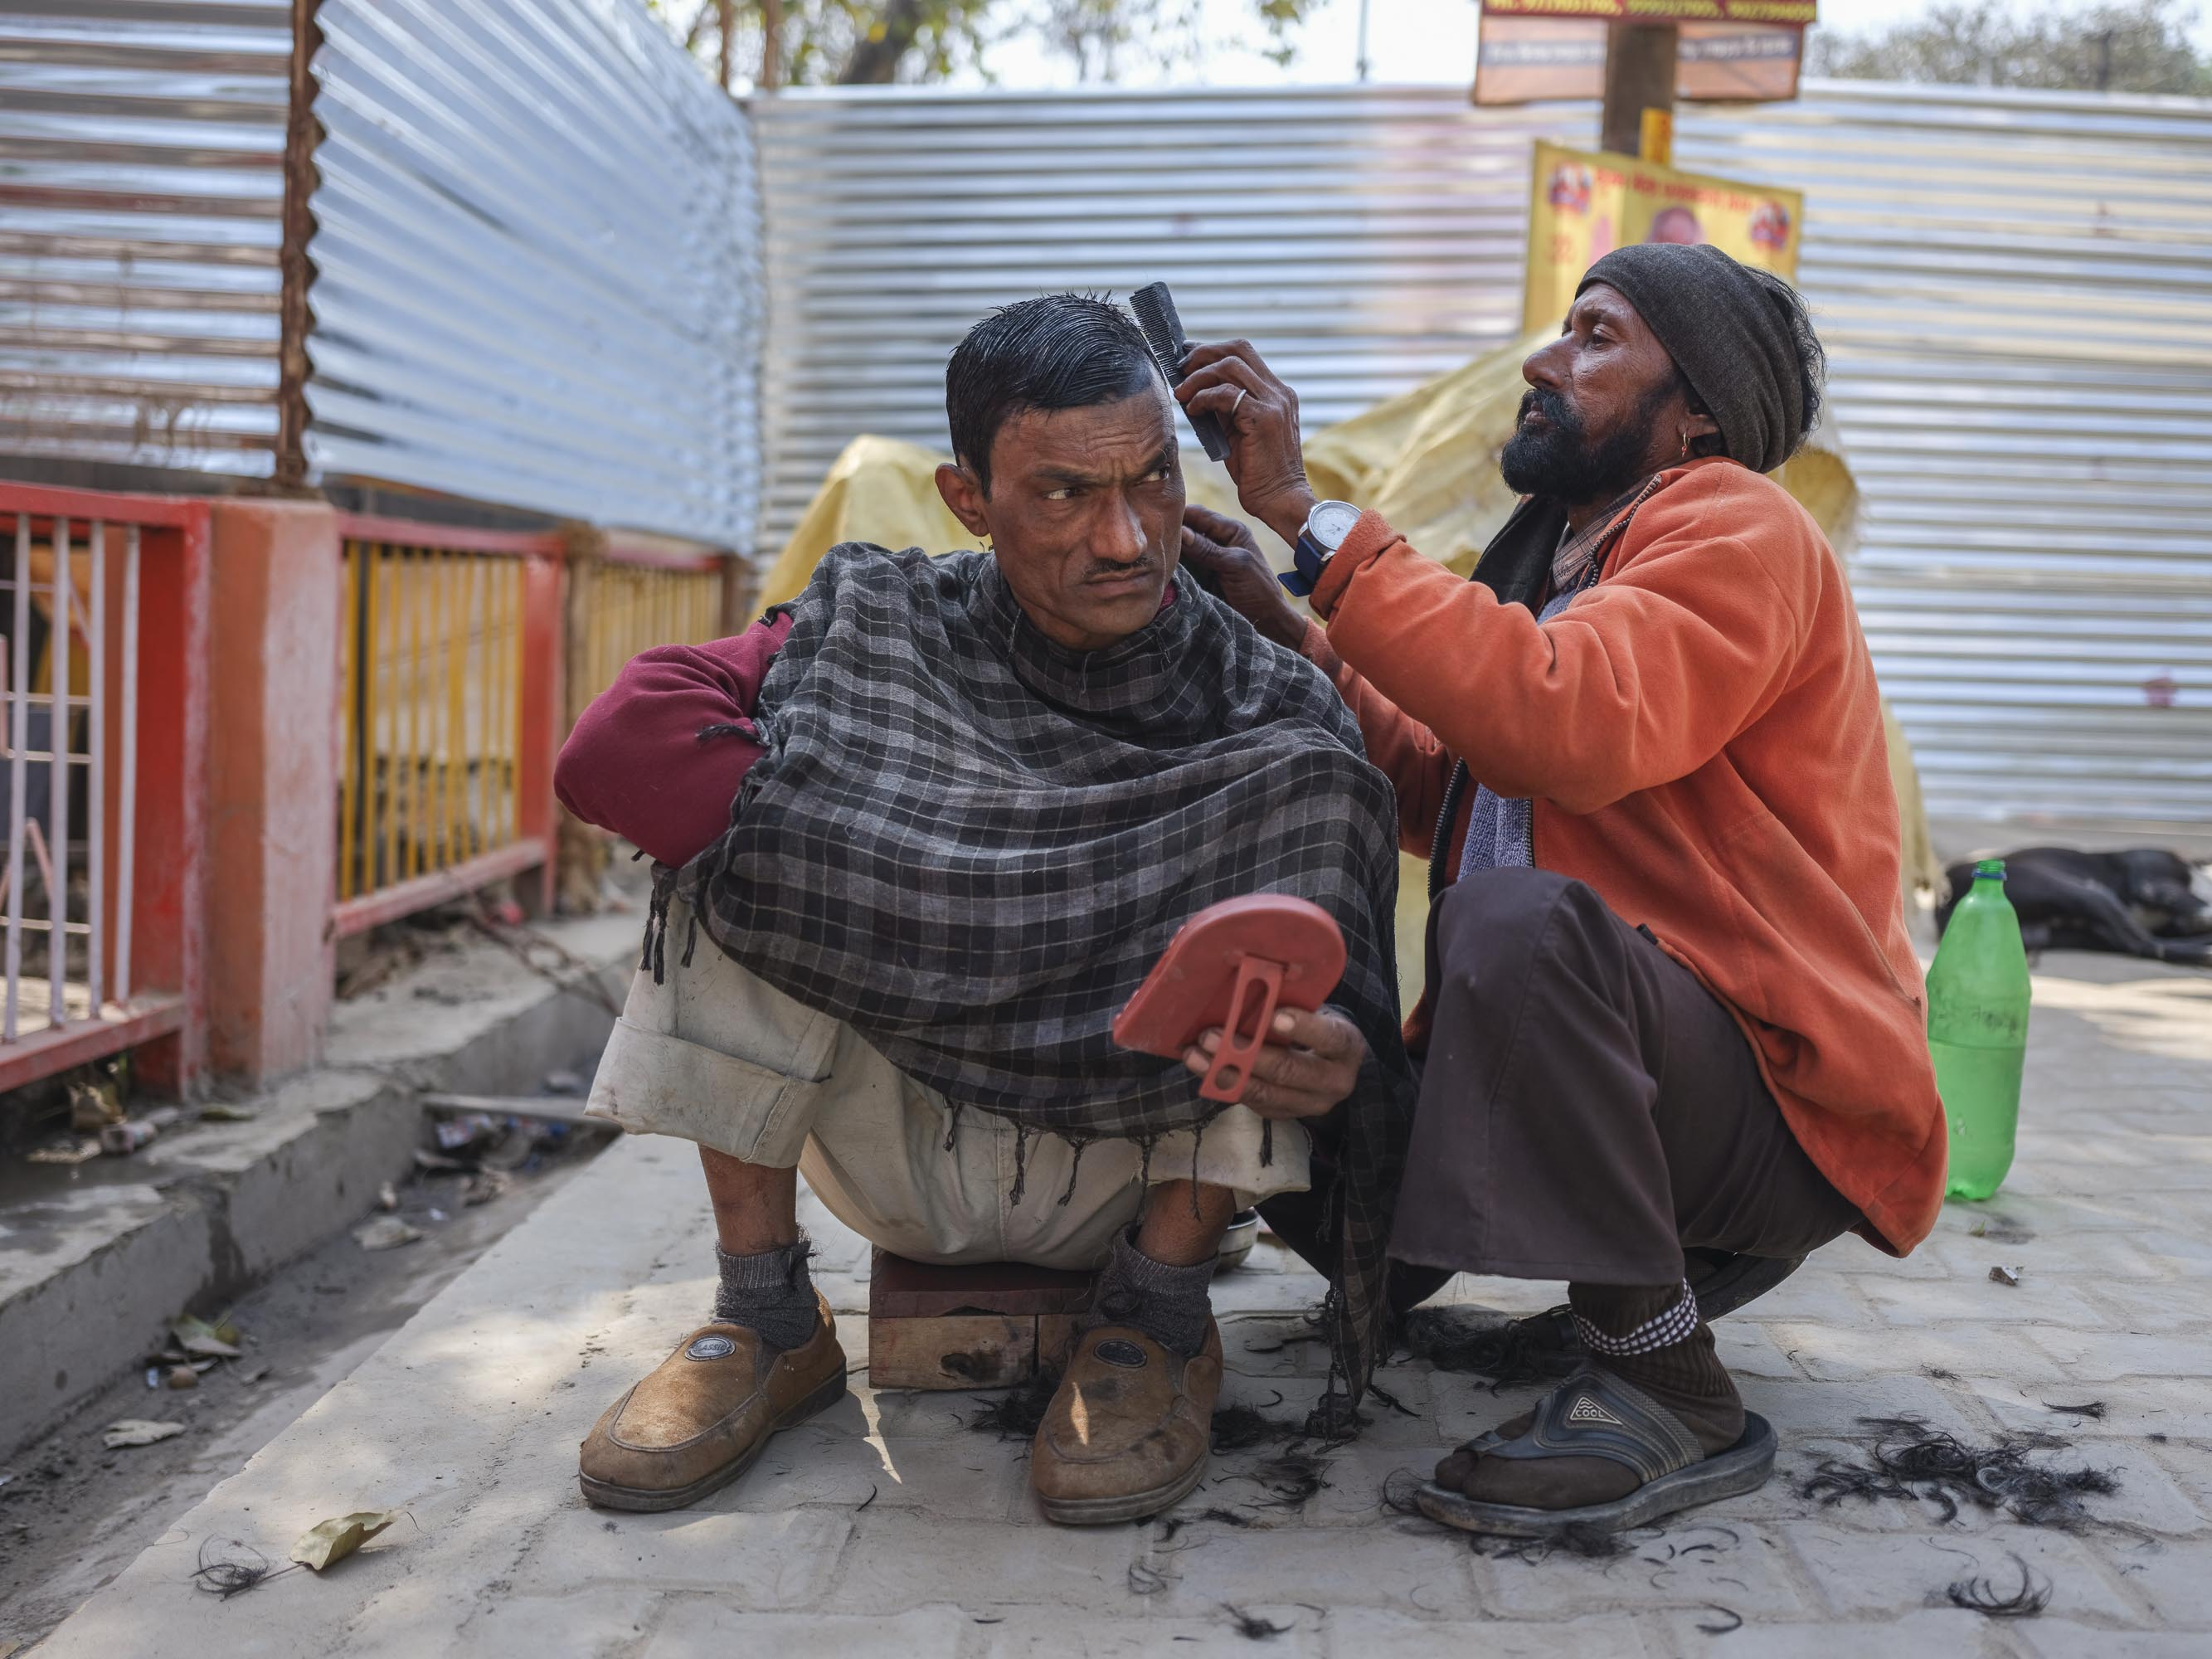 hair cut men camp pilgrims Kumbh mela 2019 India Allahabad Prayagraj Ardh hindu religious Festival event rivers photographer jose jeuland photography